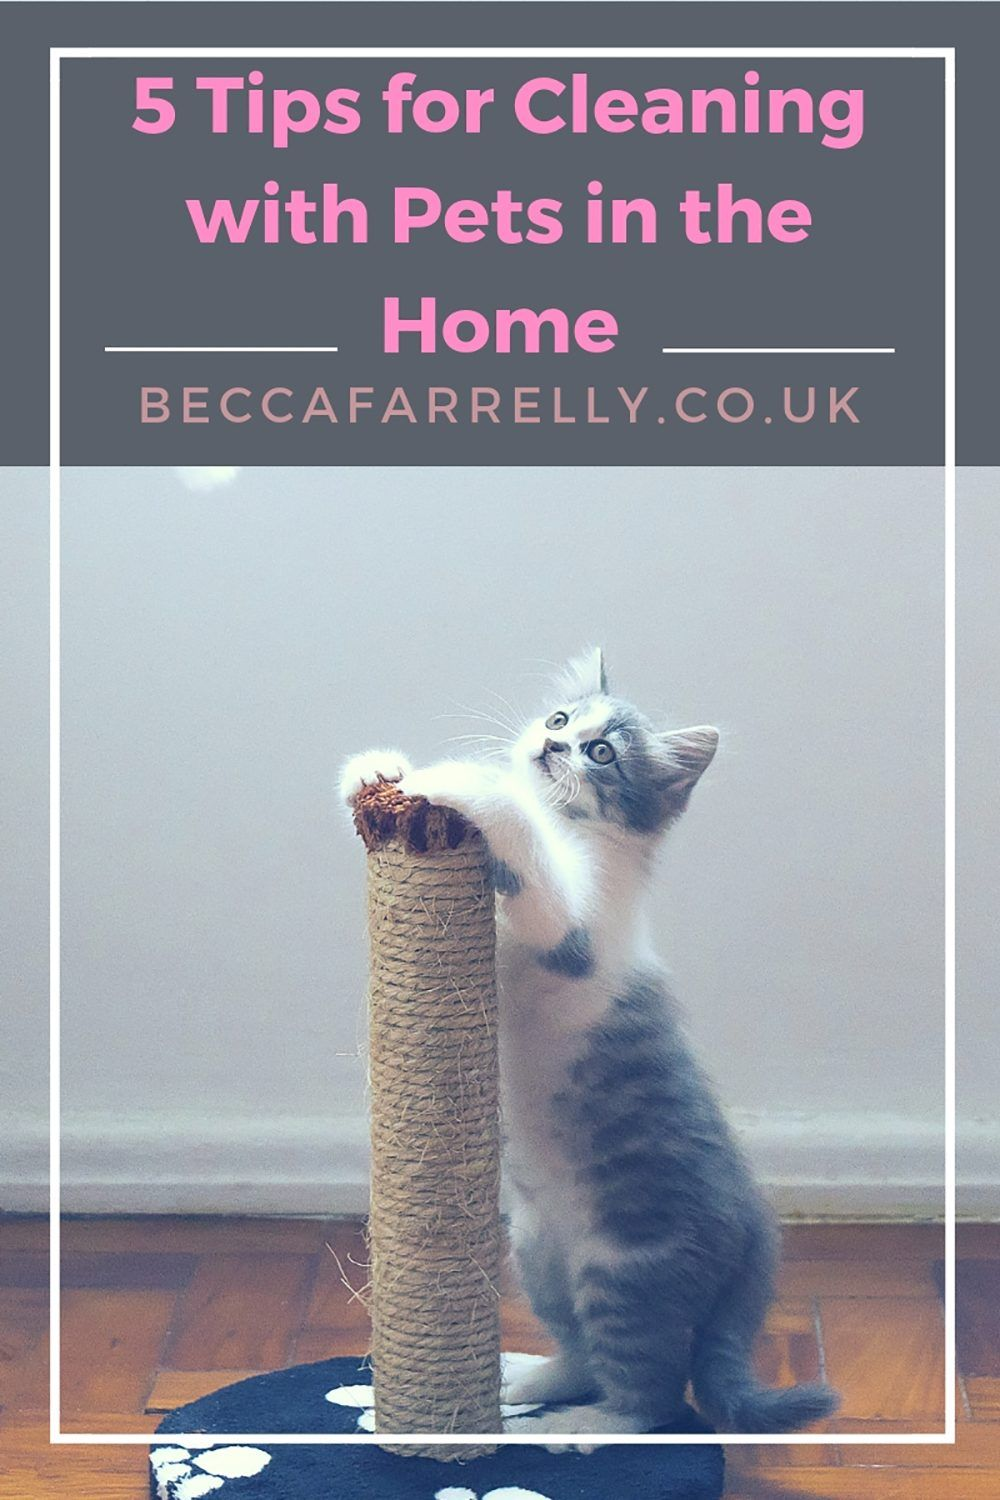 5 Tips for Cleaning with Pets in the Home Clean house